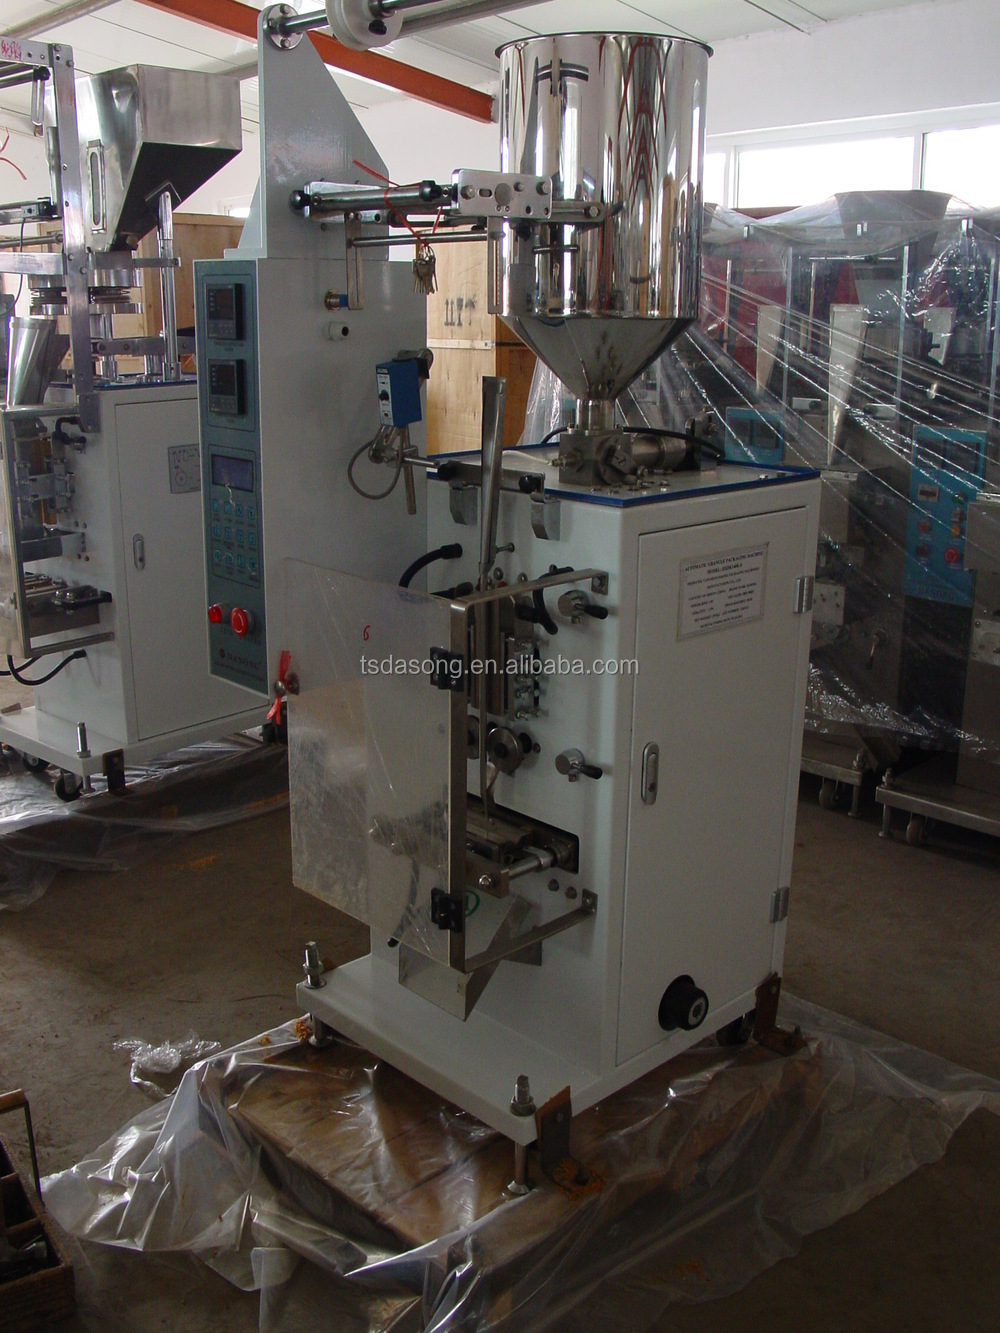 graola bar packaging saffron packaging wolf packaging machine